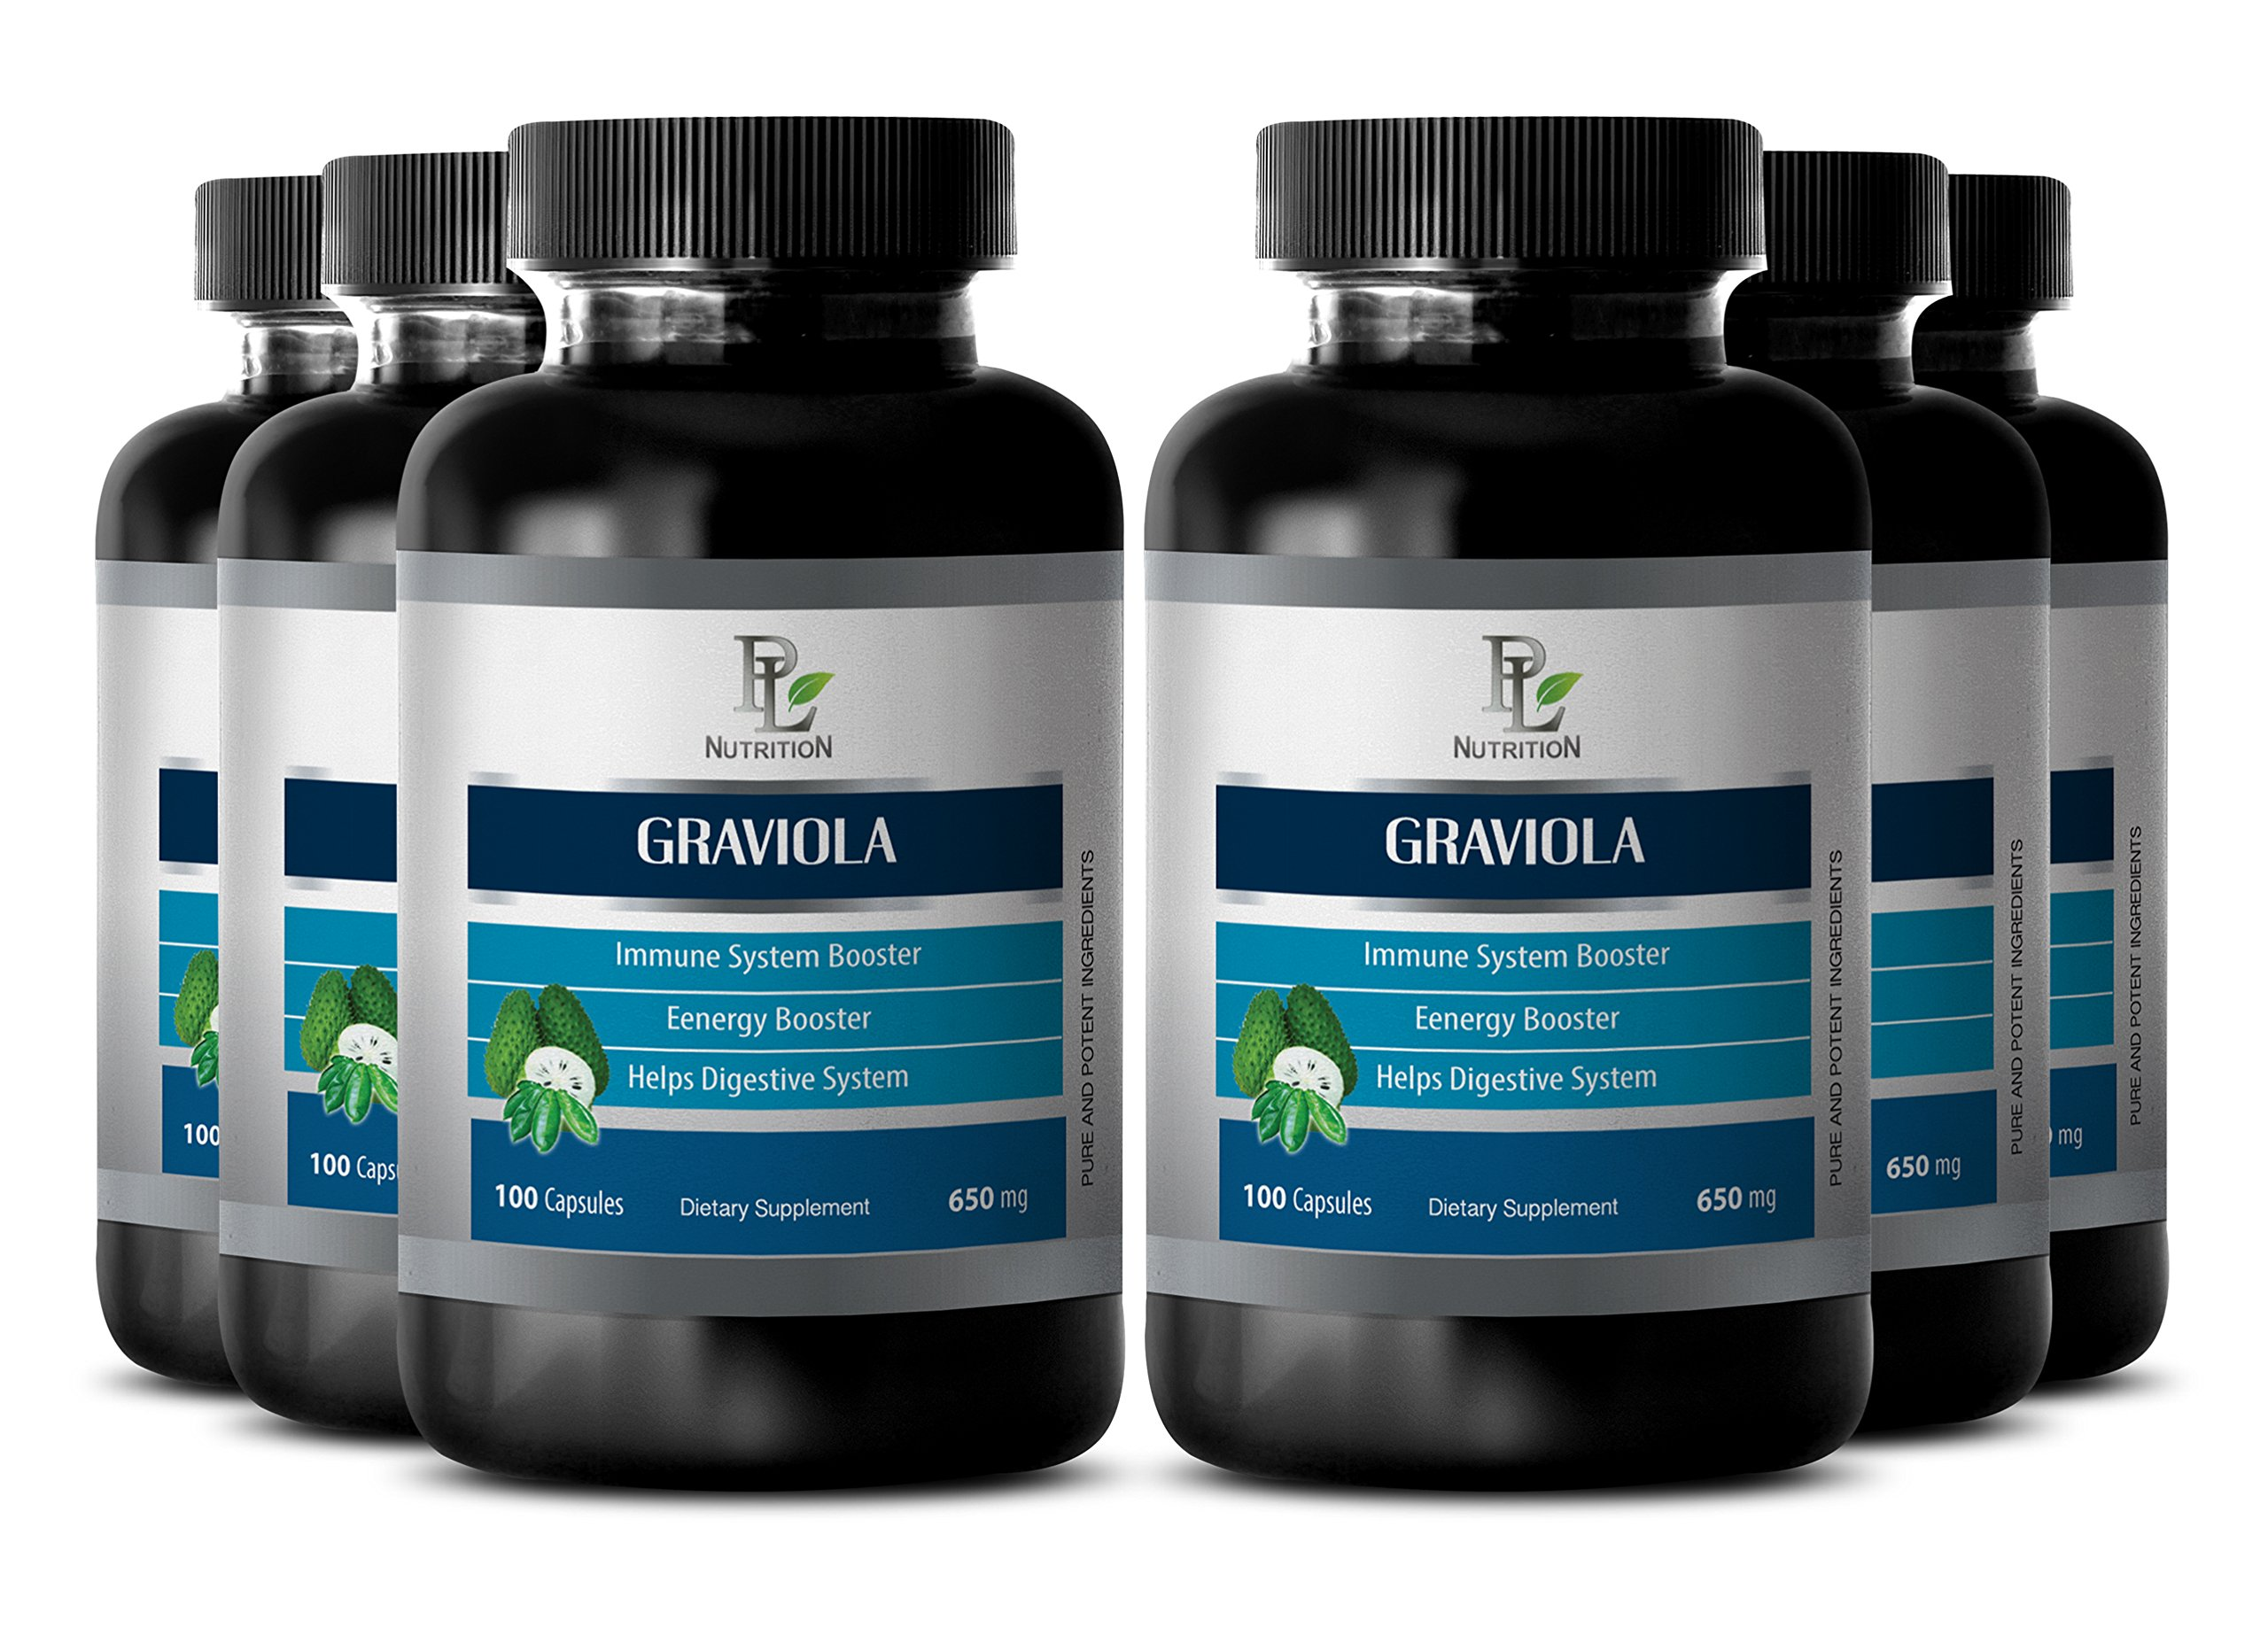 Graviola caps - GRAVIOLA EXTRACT 650 Mg - Kidney health supplements - 6 Bottles 600 Capsules